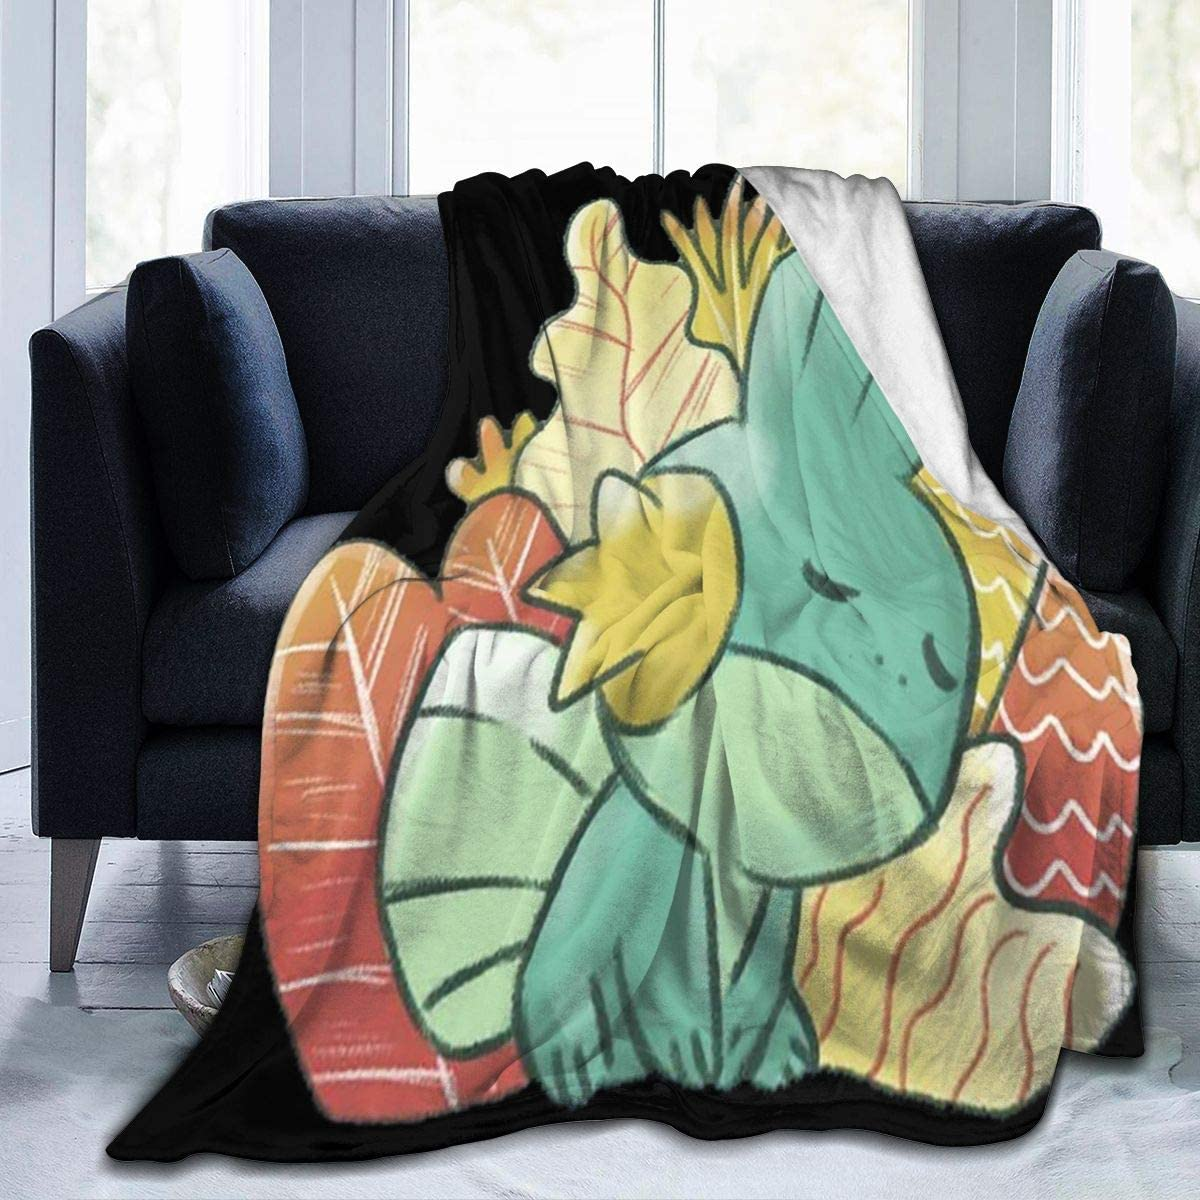 Poke-mon Sleeping Mudkip Fleece Blanket Ultra-Soft Lightweight All Seasons Fit Bed Couch Chair Office Flight and Outdoors